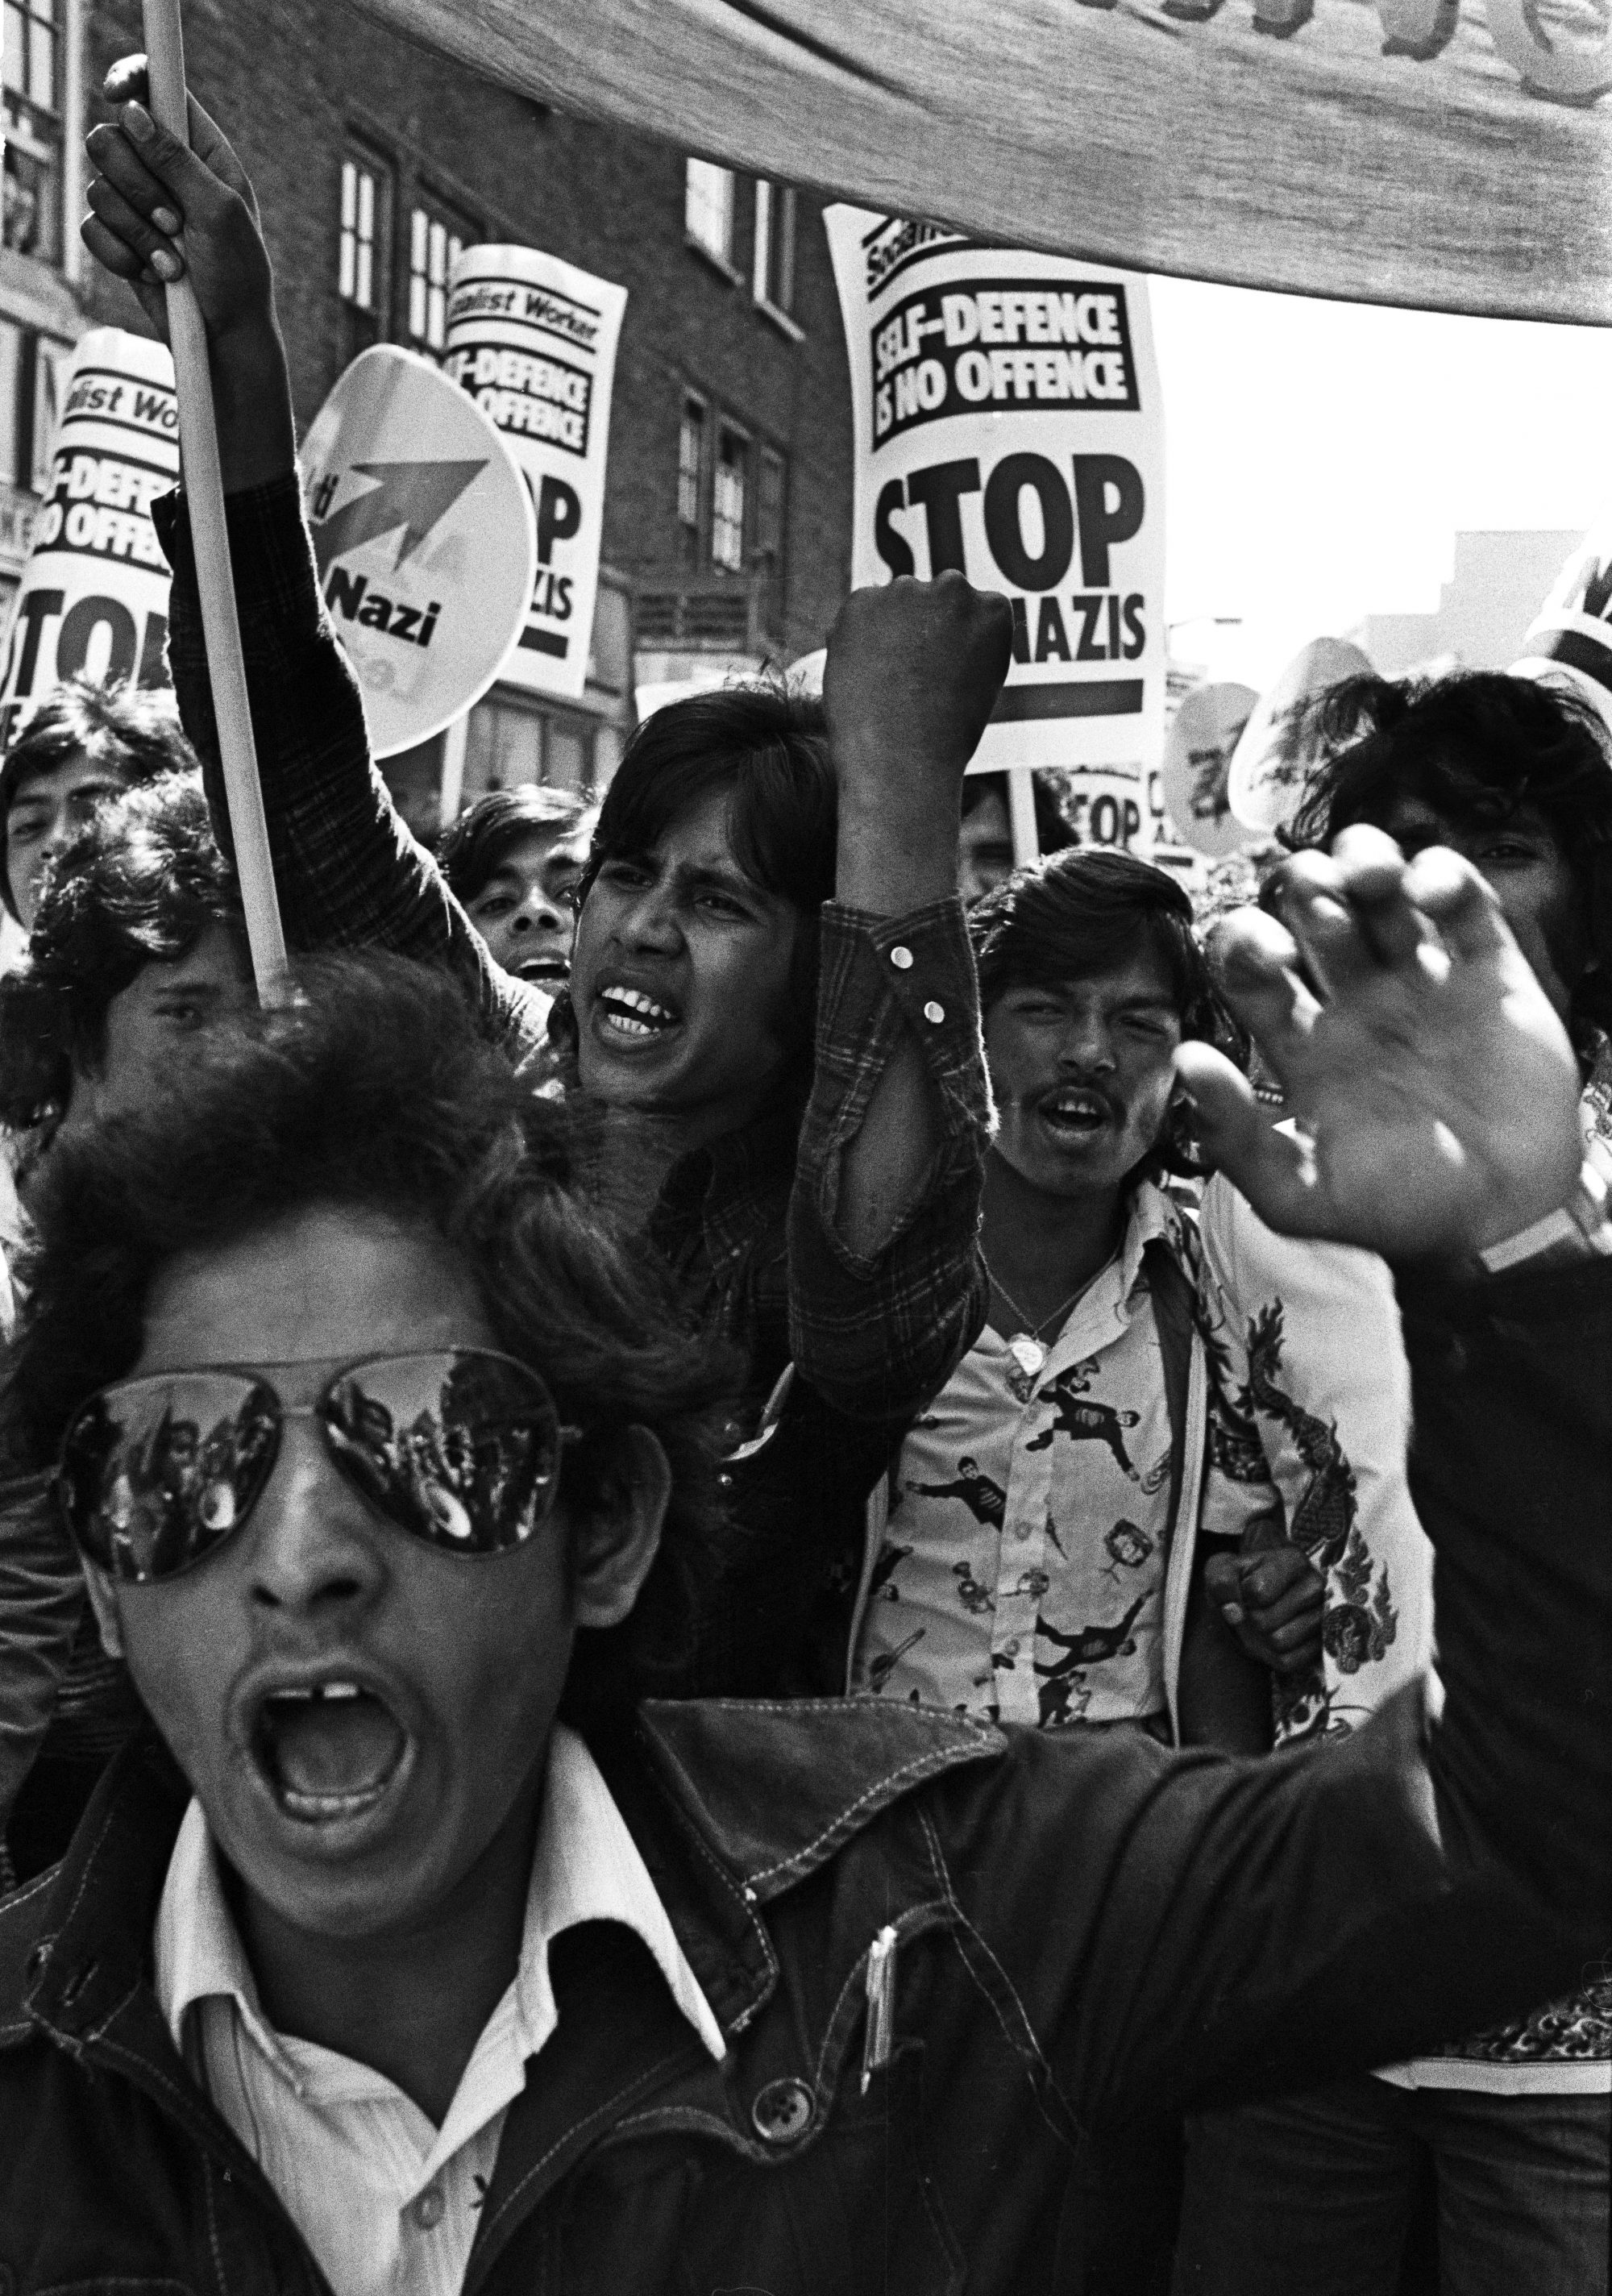 Bengali youths lead a demonstration. Brick Lane, London 1978 by Syd Shelton